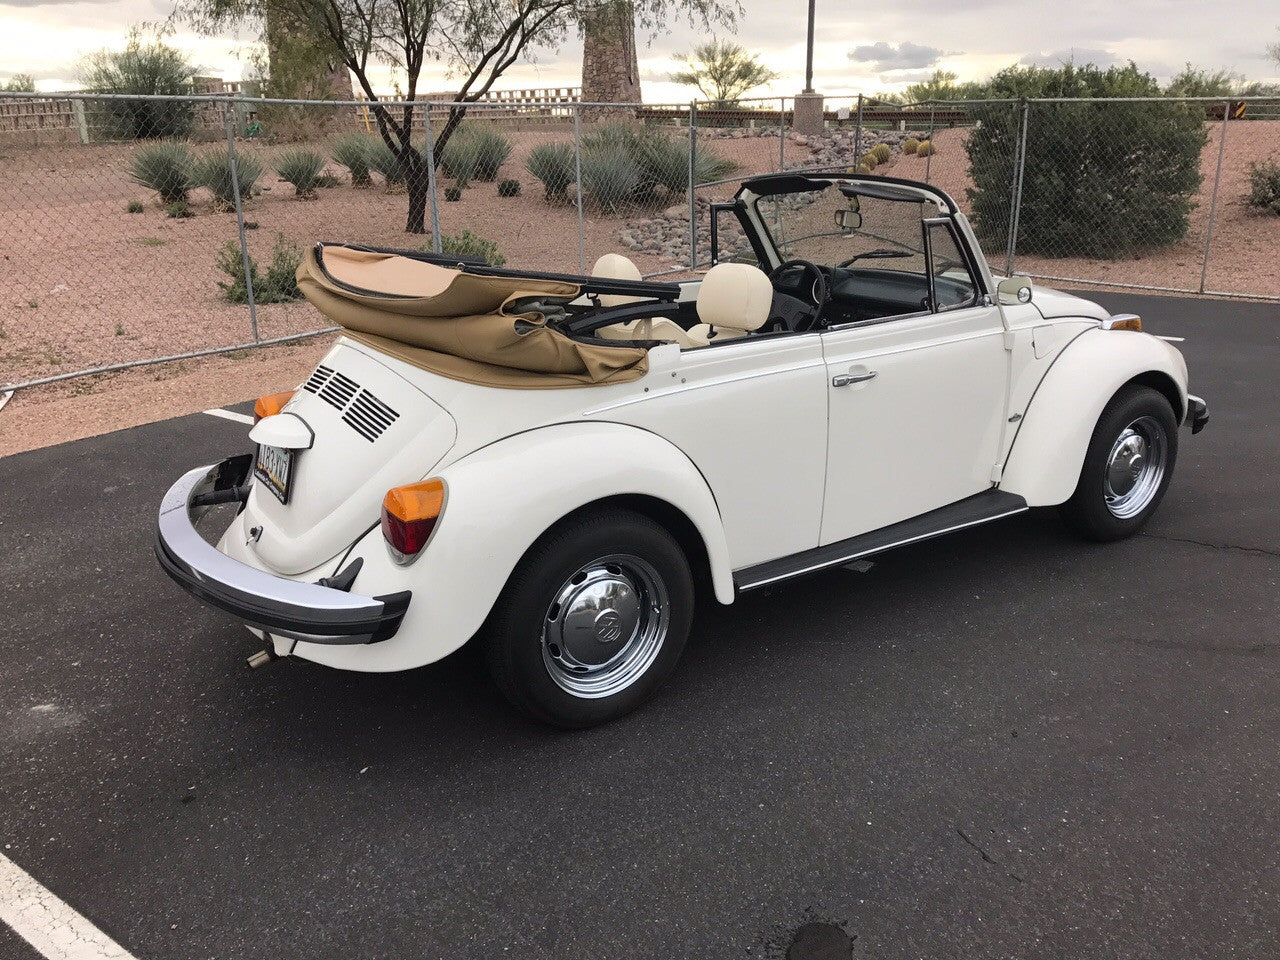 Sold VW Bug Convertible